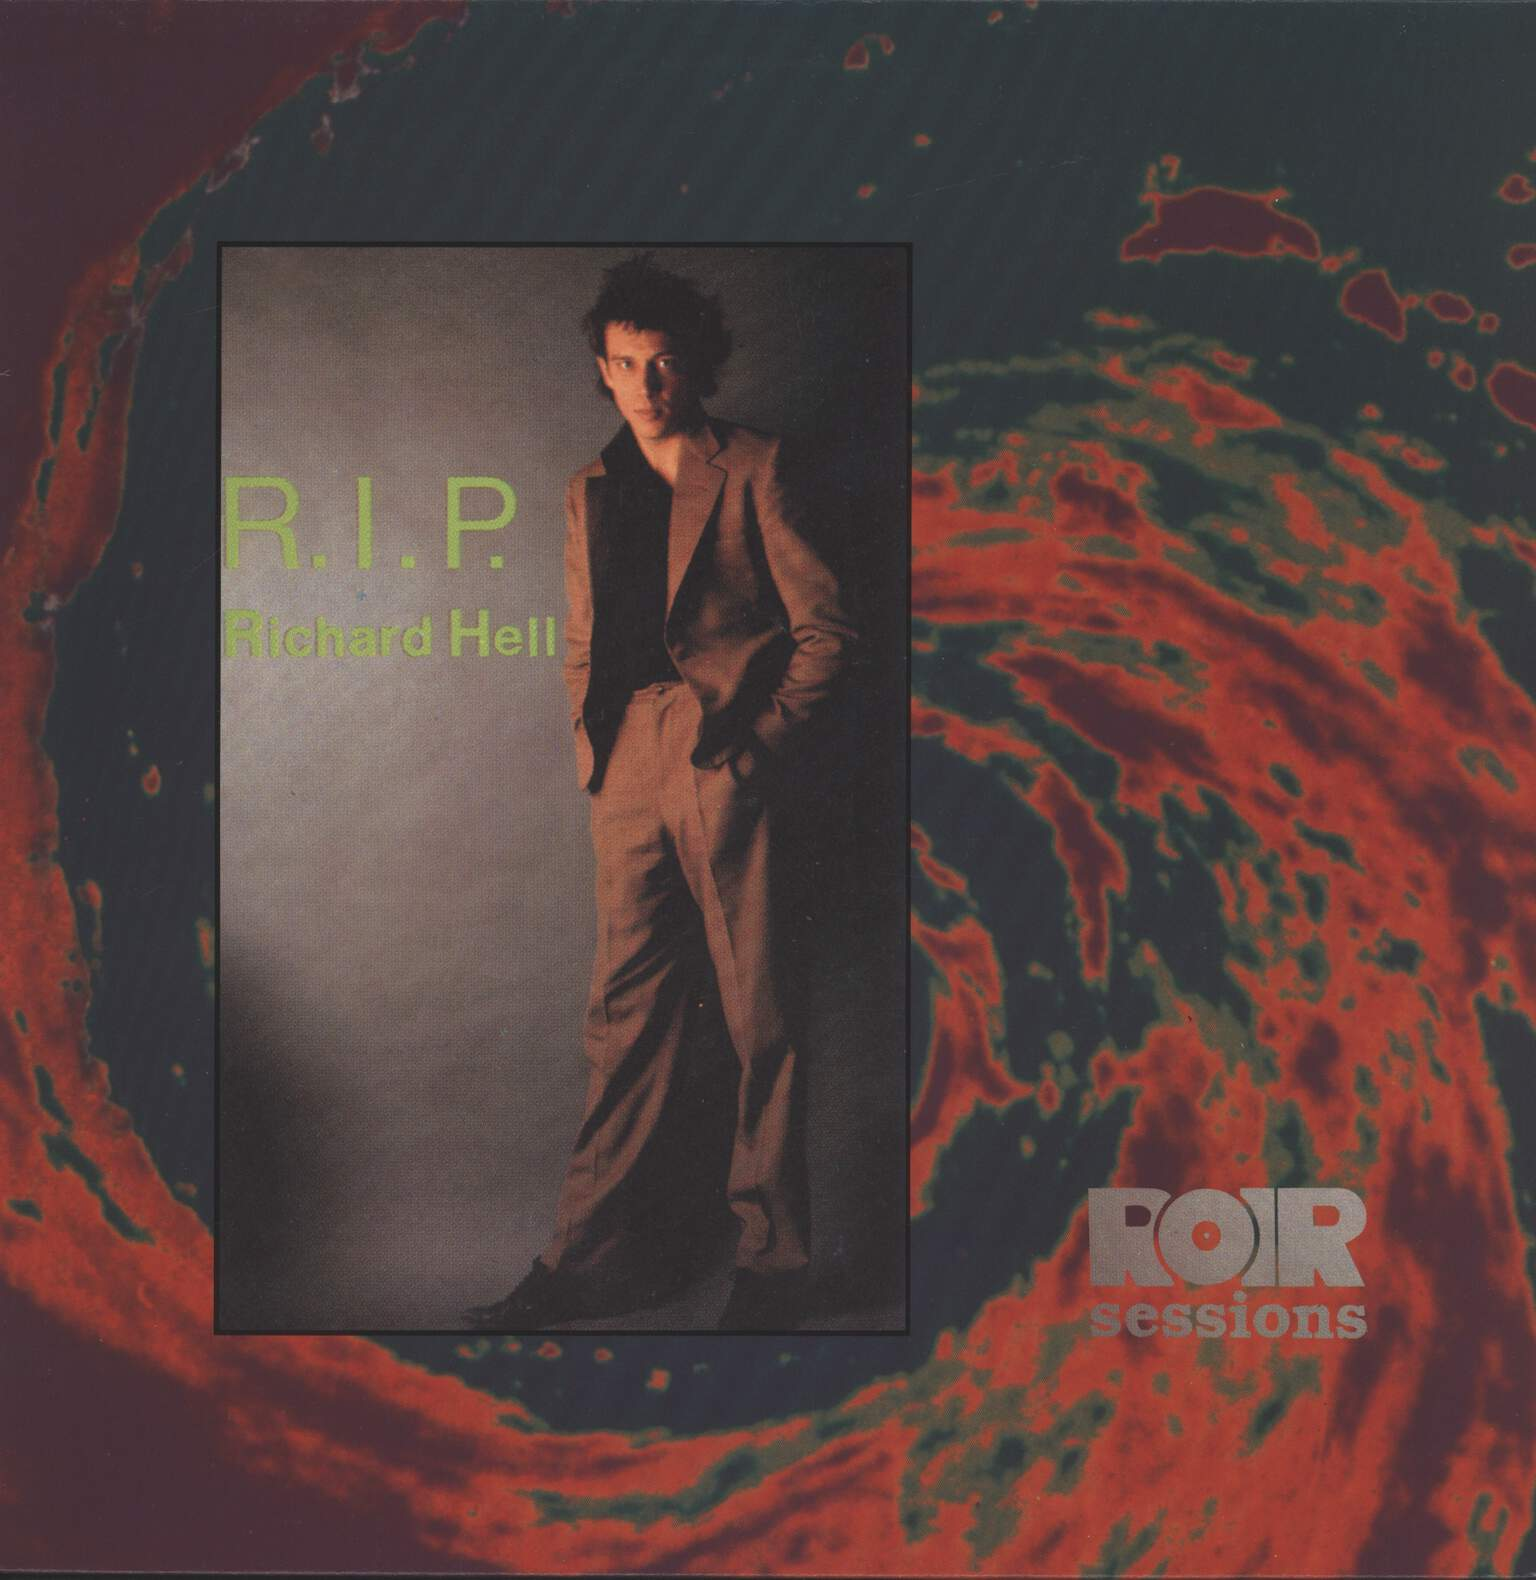 Richard Hell: R.I.P., LP (Vinyl)